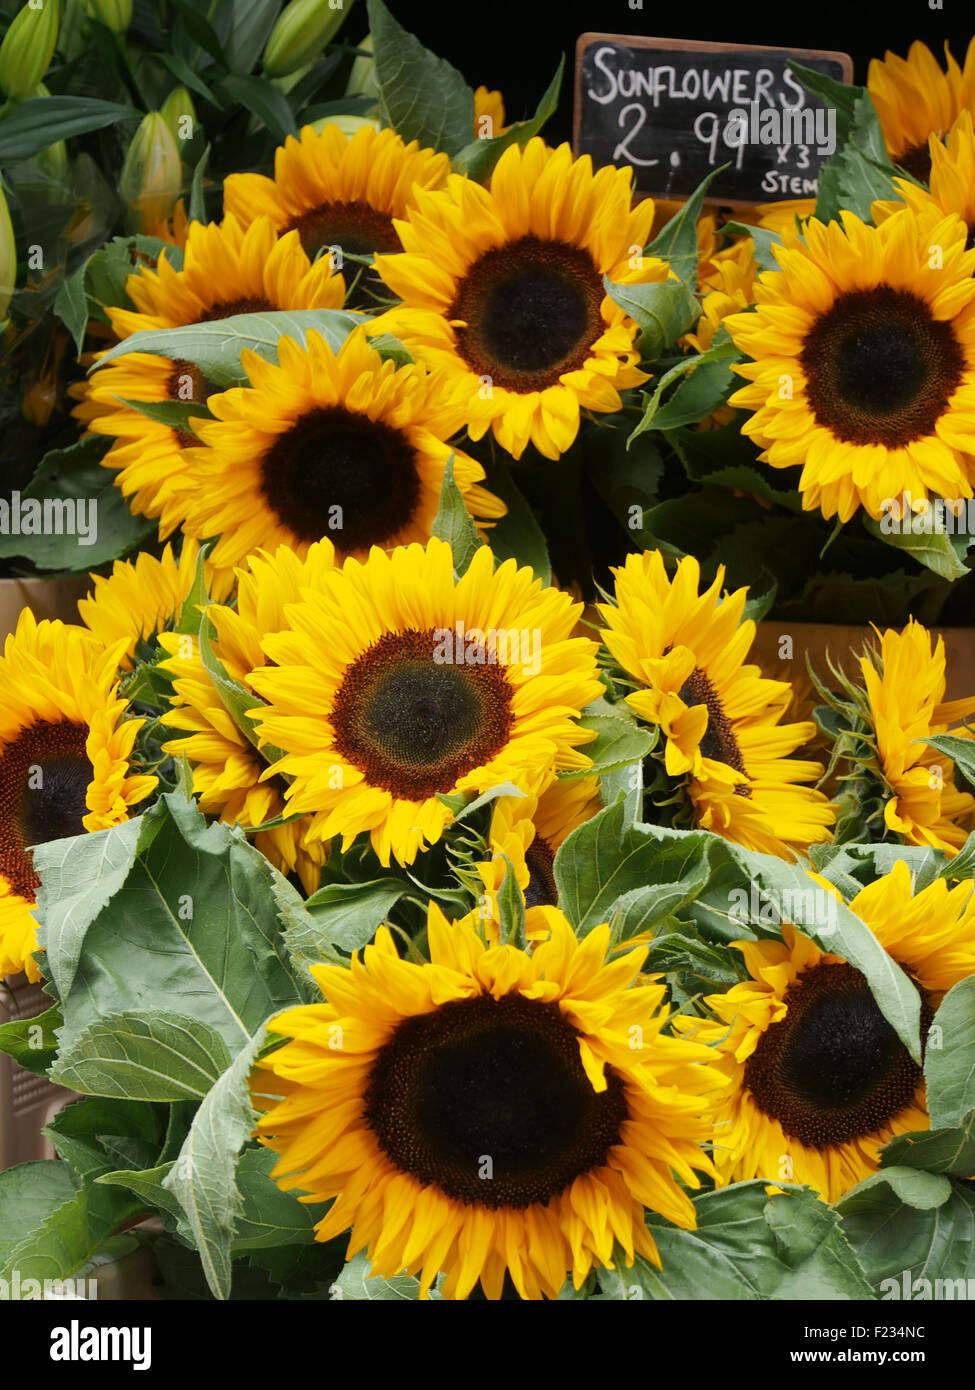 Sunflowers (Helianthus annuus) for sale on a stall in Manchester city centre, UK. - Stock Image